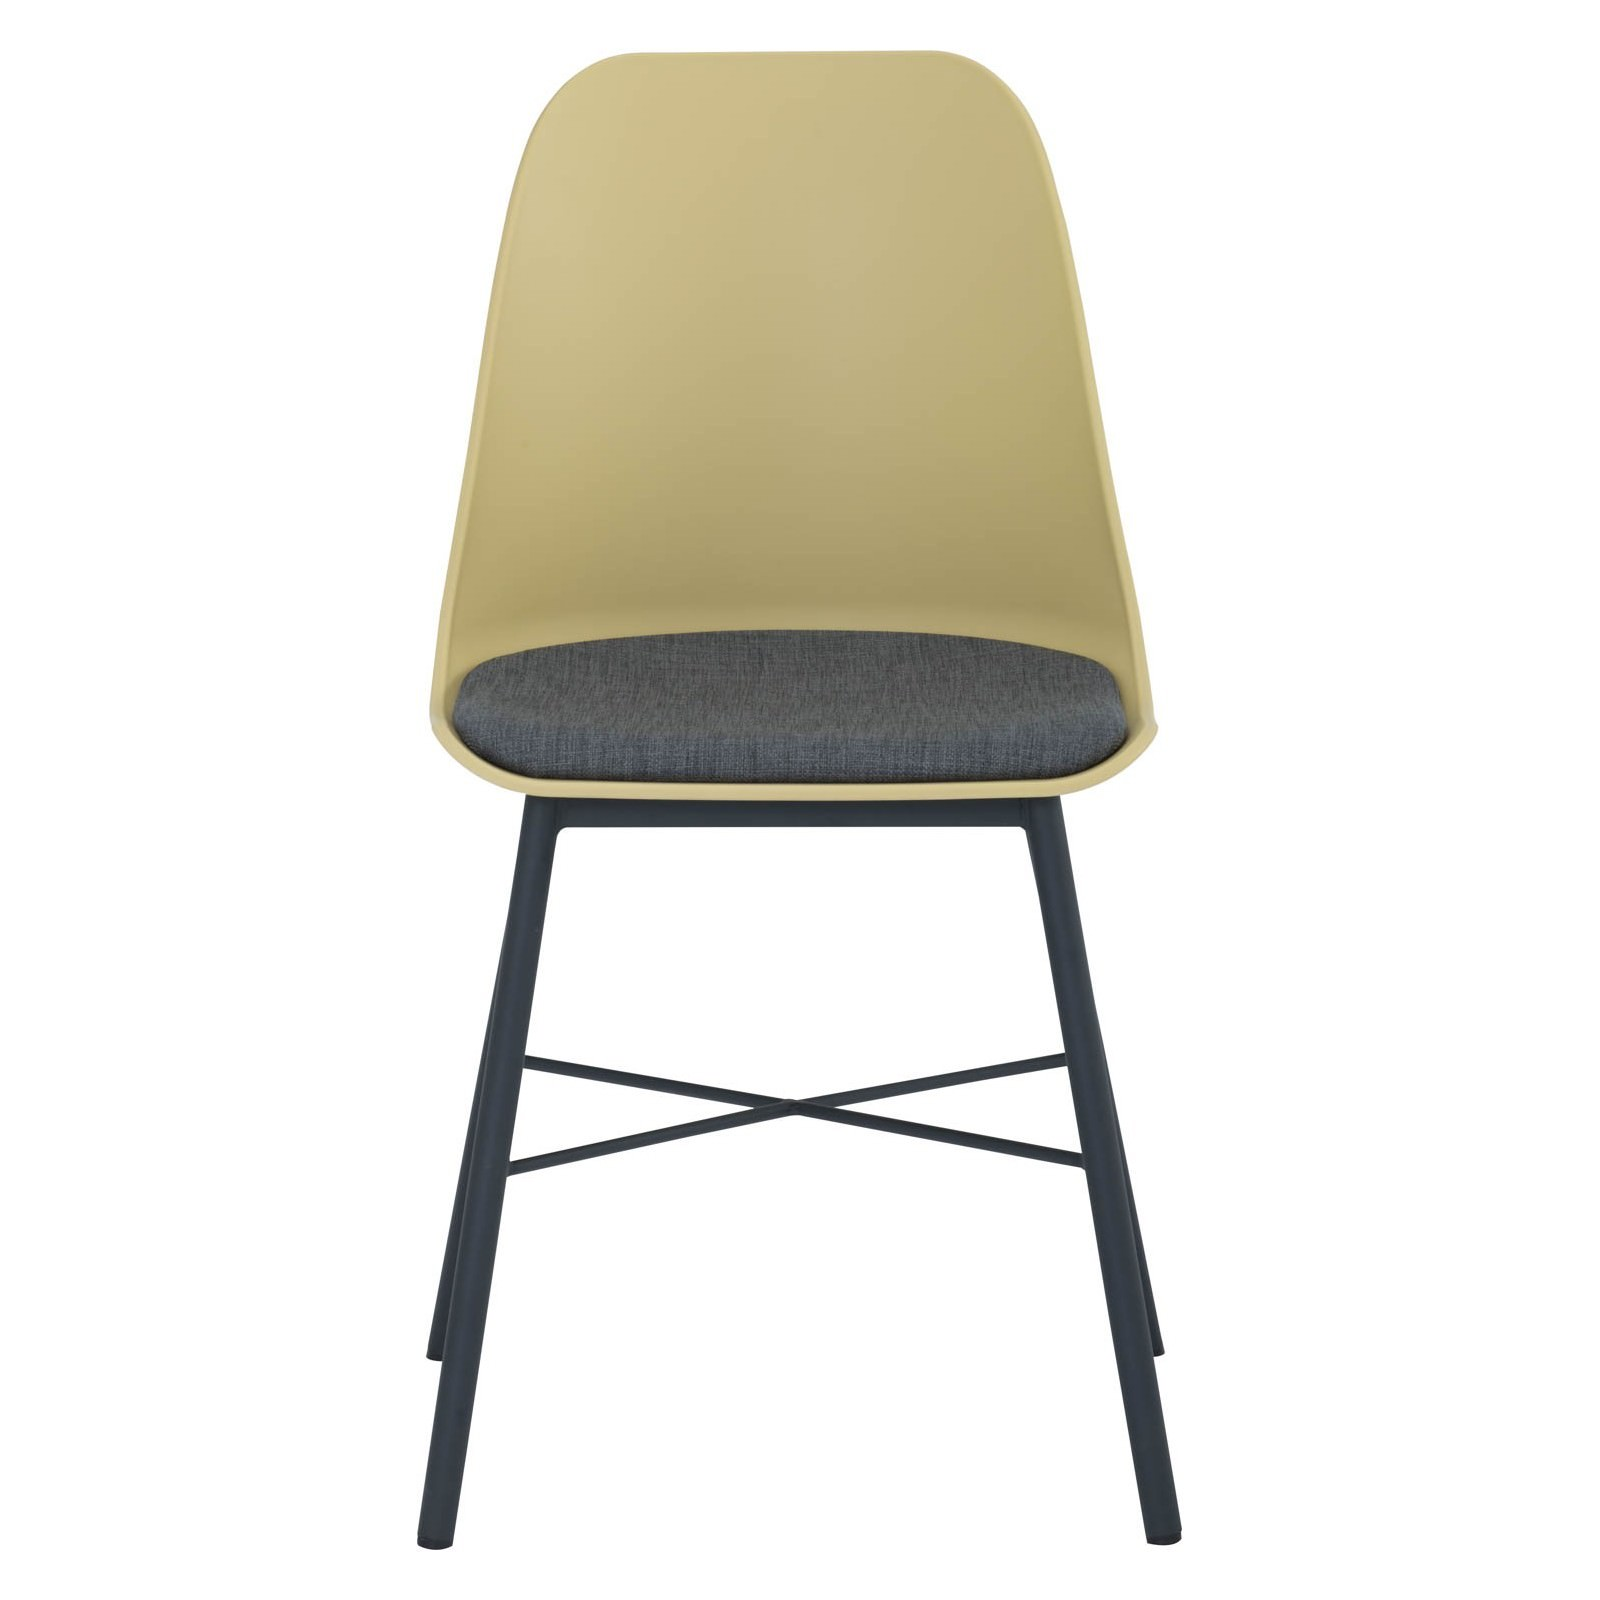 Laxmi Commercial Grade Dining Chair, Yellow